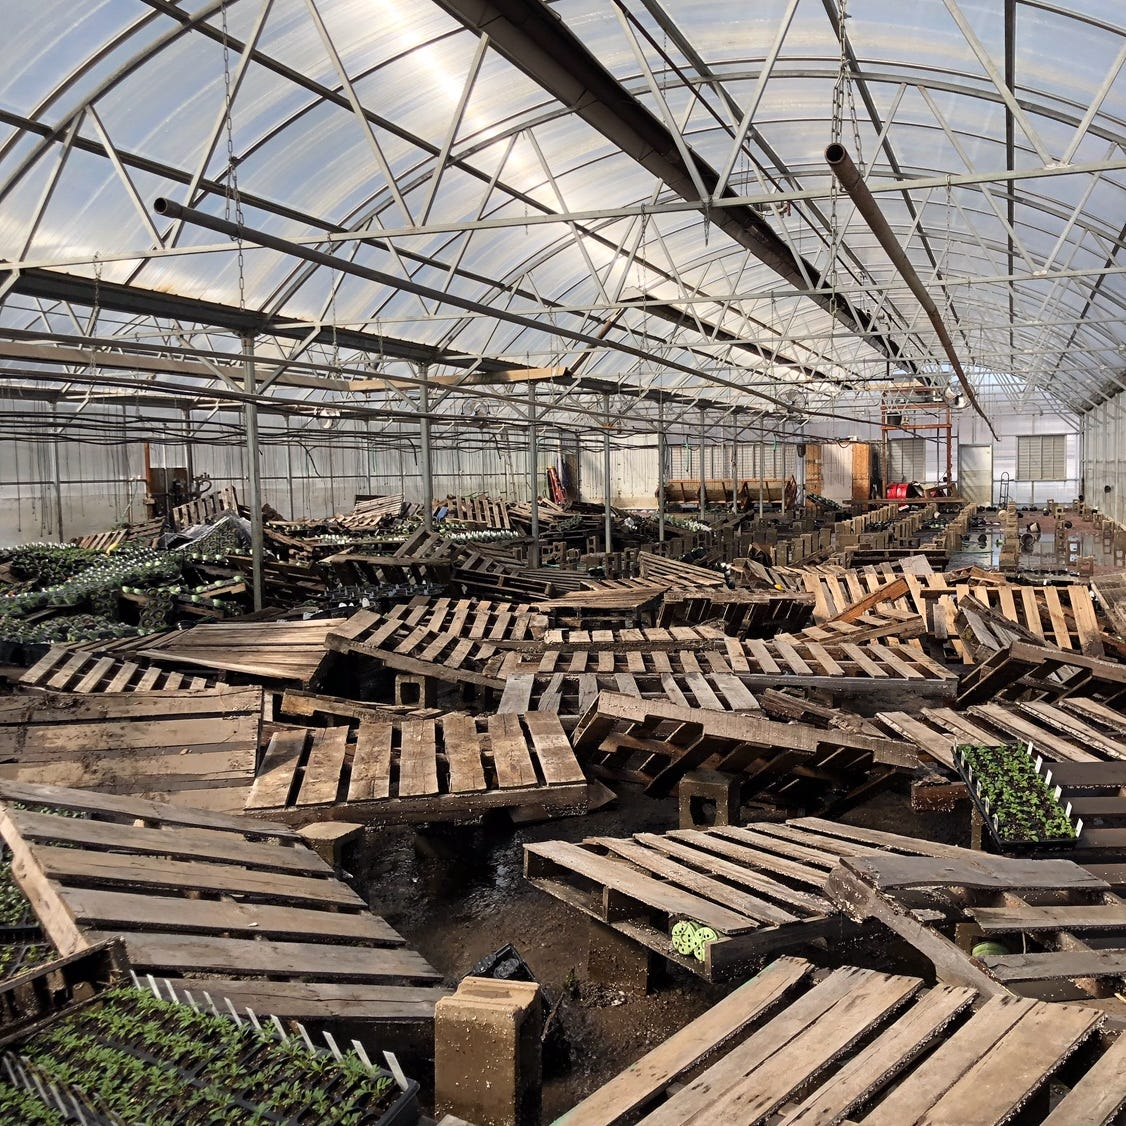 Cliff Avenue Greenhouse faced explosion threat, now 'heartbreaking' flood damage